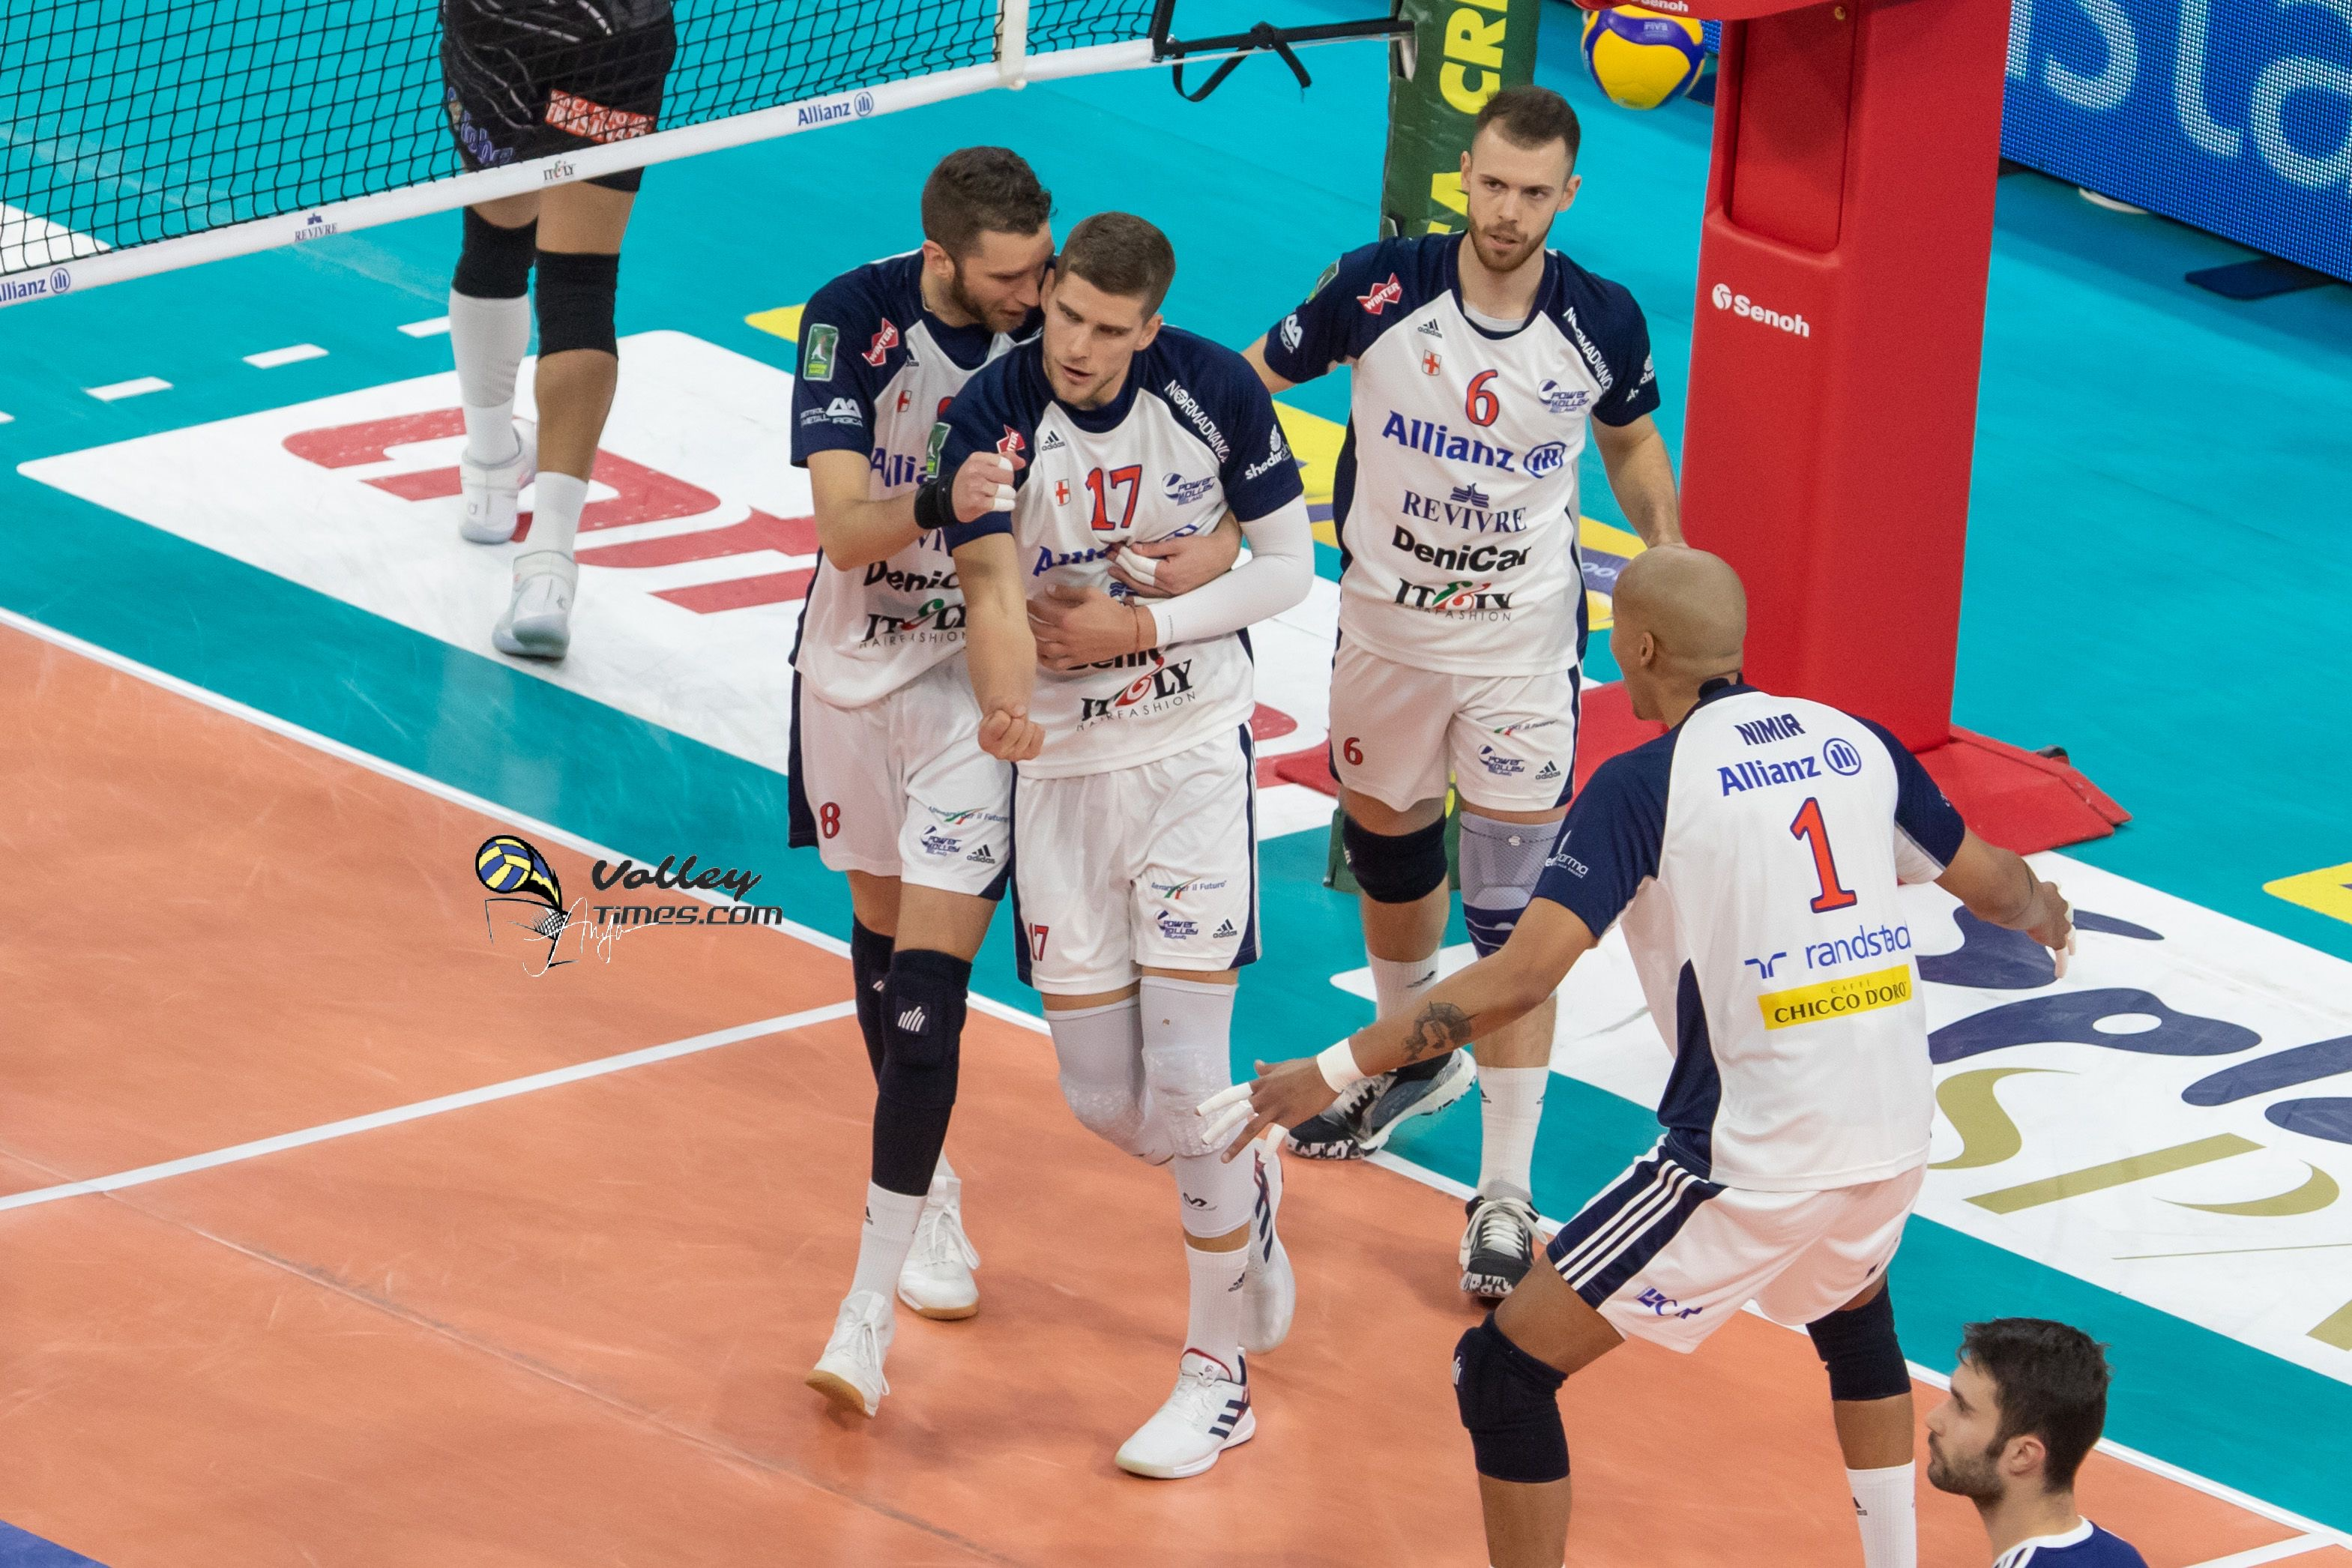 Italy: Modena conquer Trentino's home court after 4 years, Perugia record 21st win in a row, Civitanova, Monza, Cisterna and Milano ok